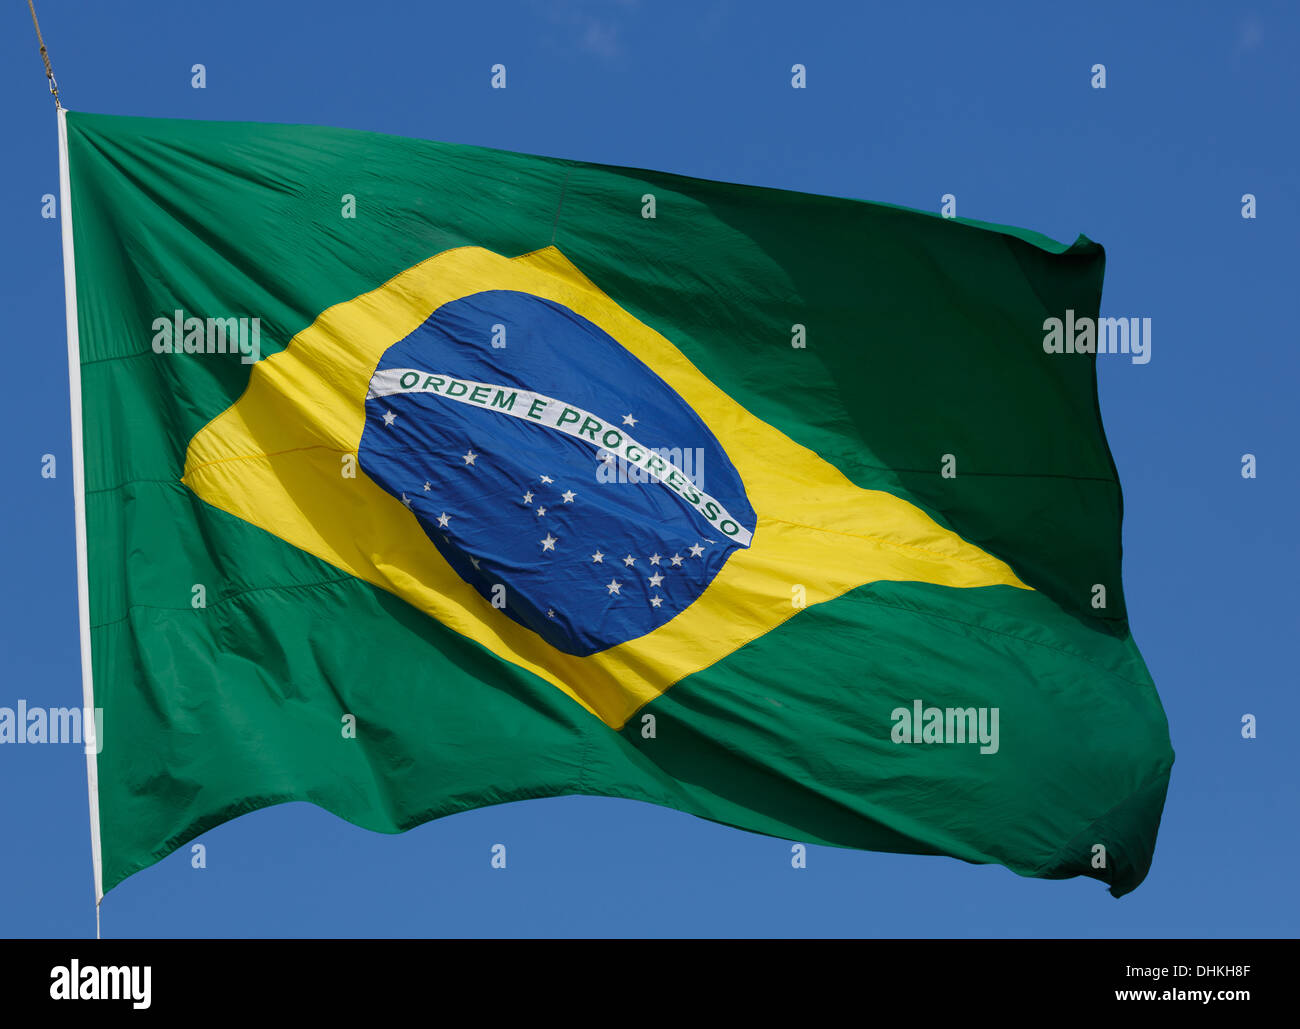 The flag of Brazil. - Stock Image